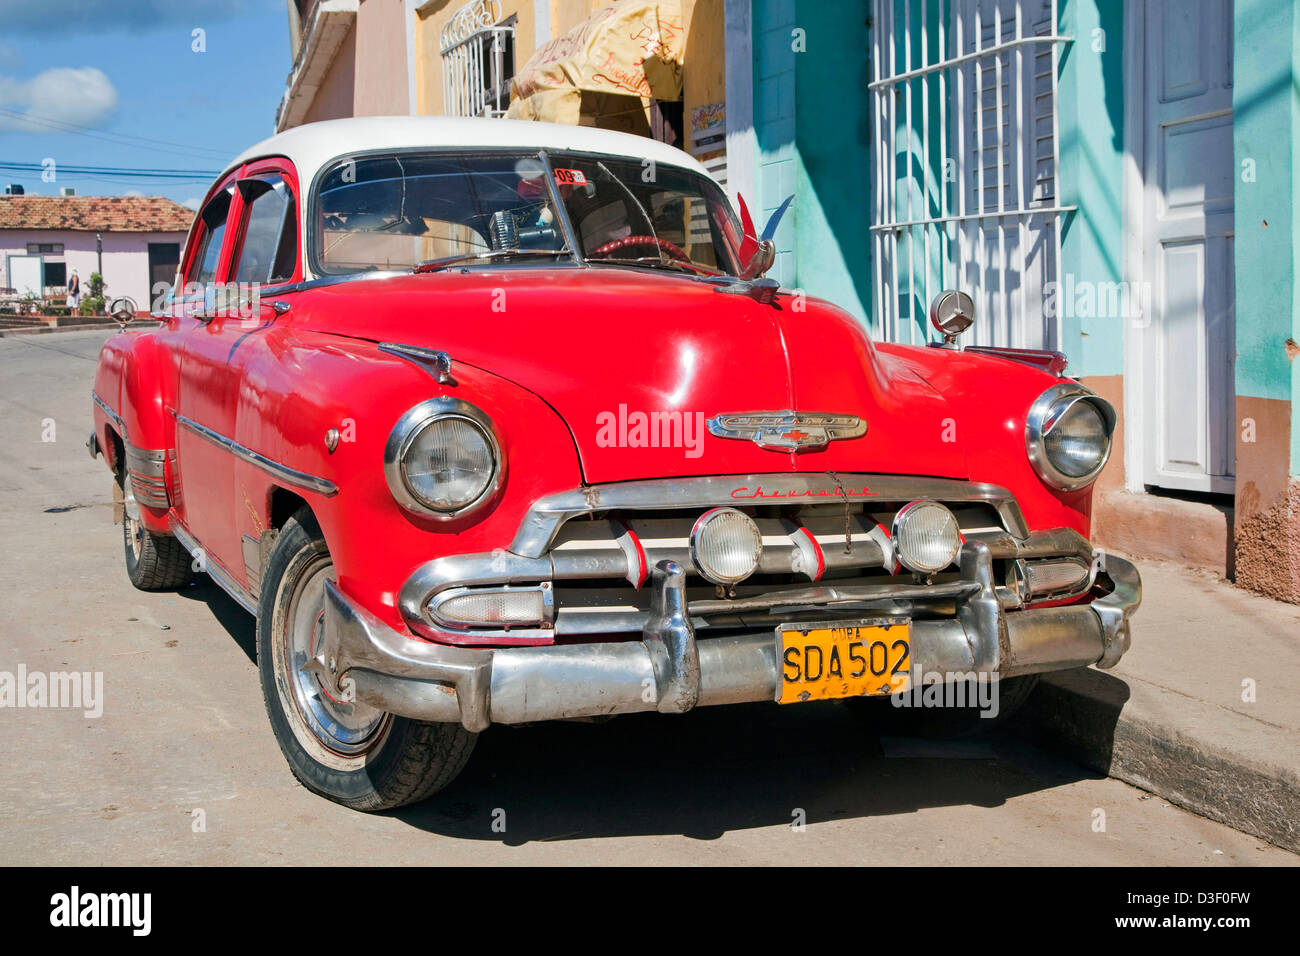 Old 1950s vintage american chevrolet car yank tank in for Old classic american cars